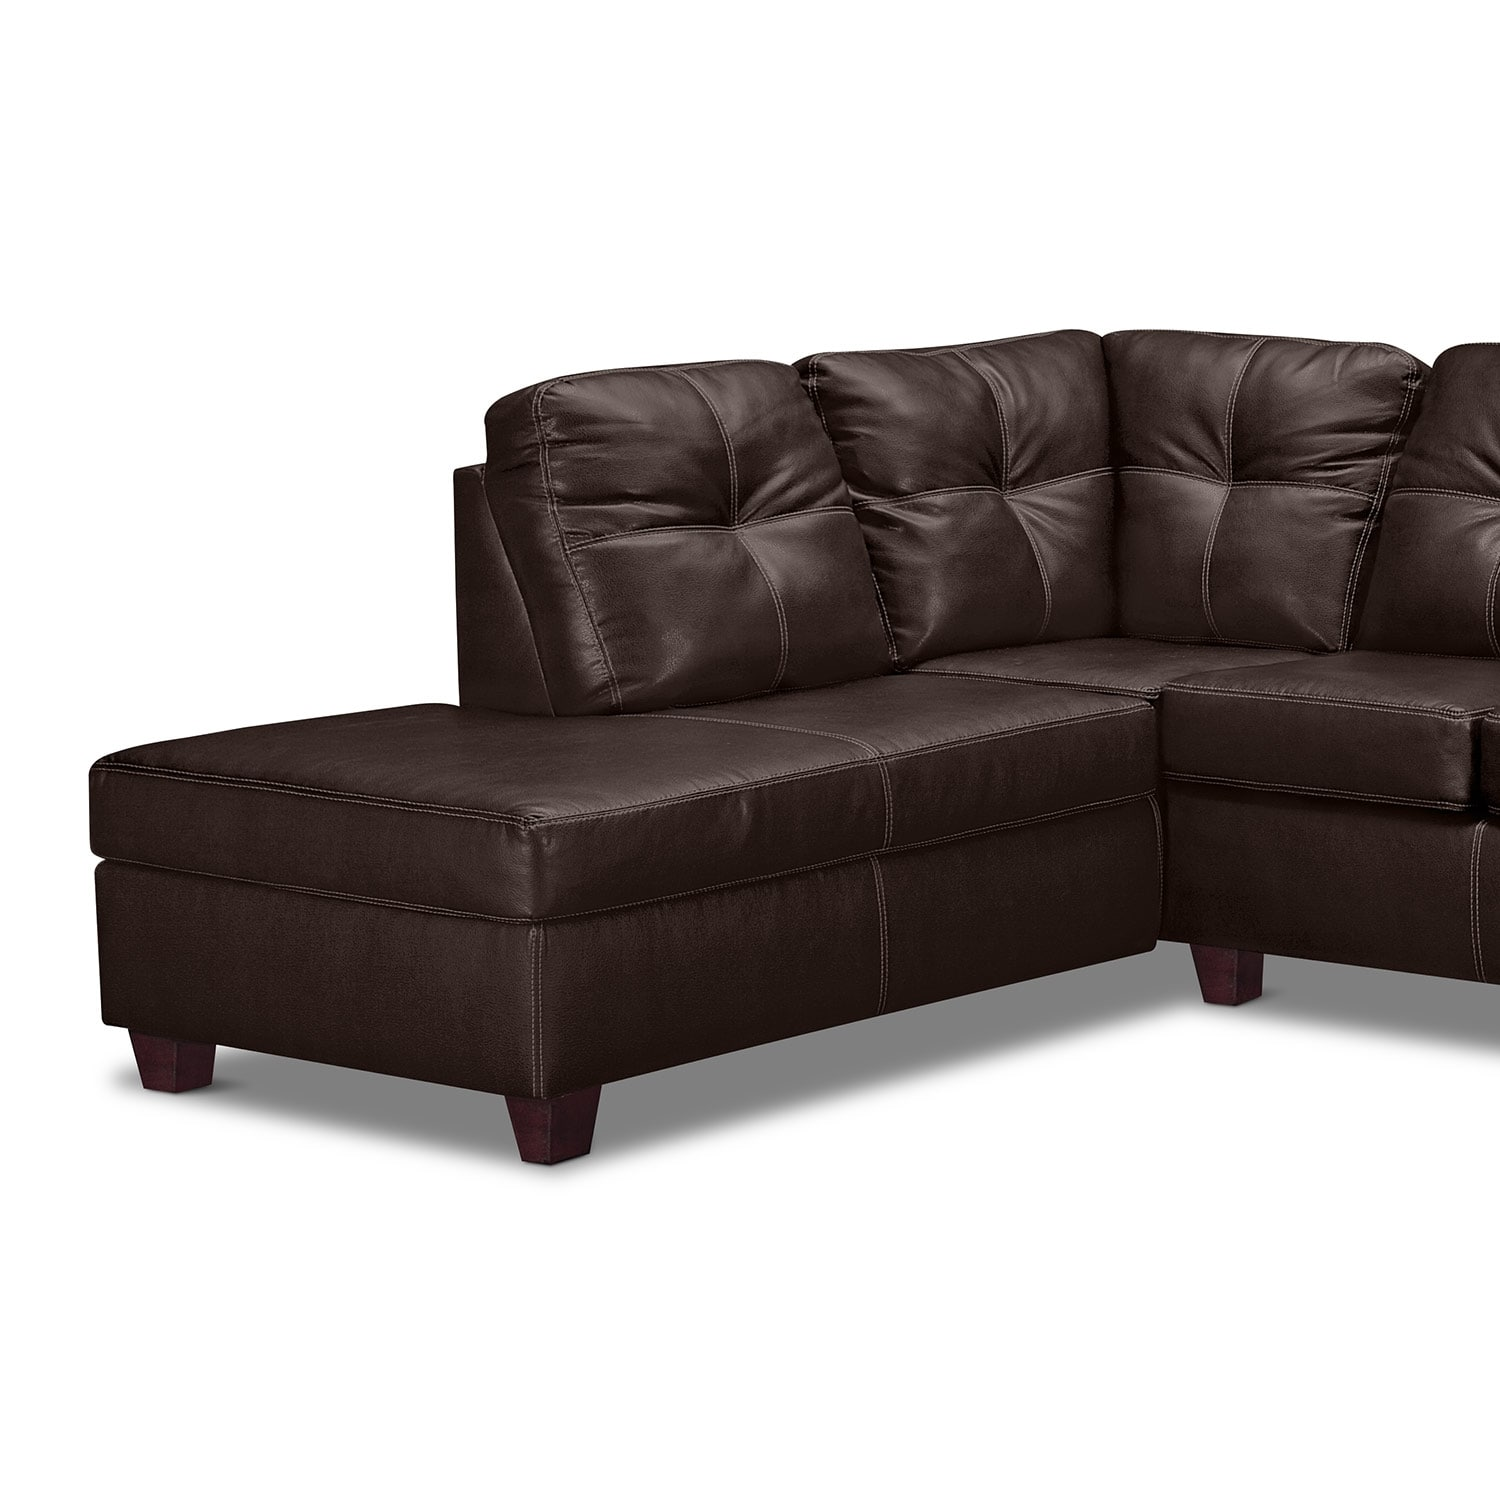 Ricardo 2 piece sectional with left facing chaise brown for 2 piece sectional sofa with chaise